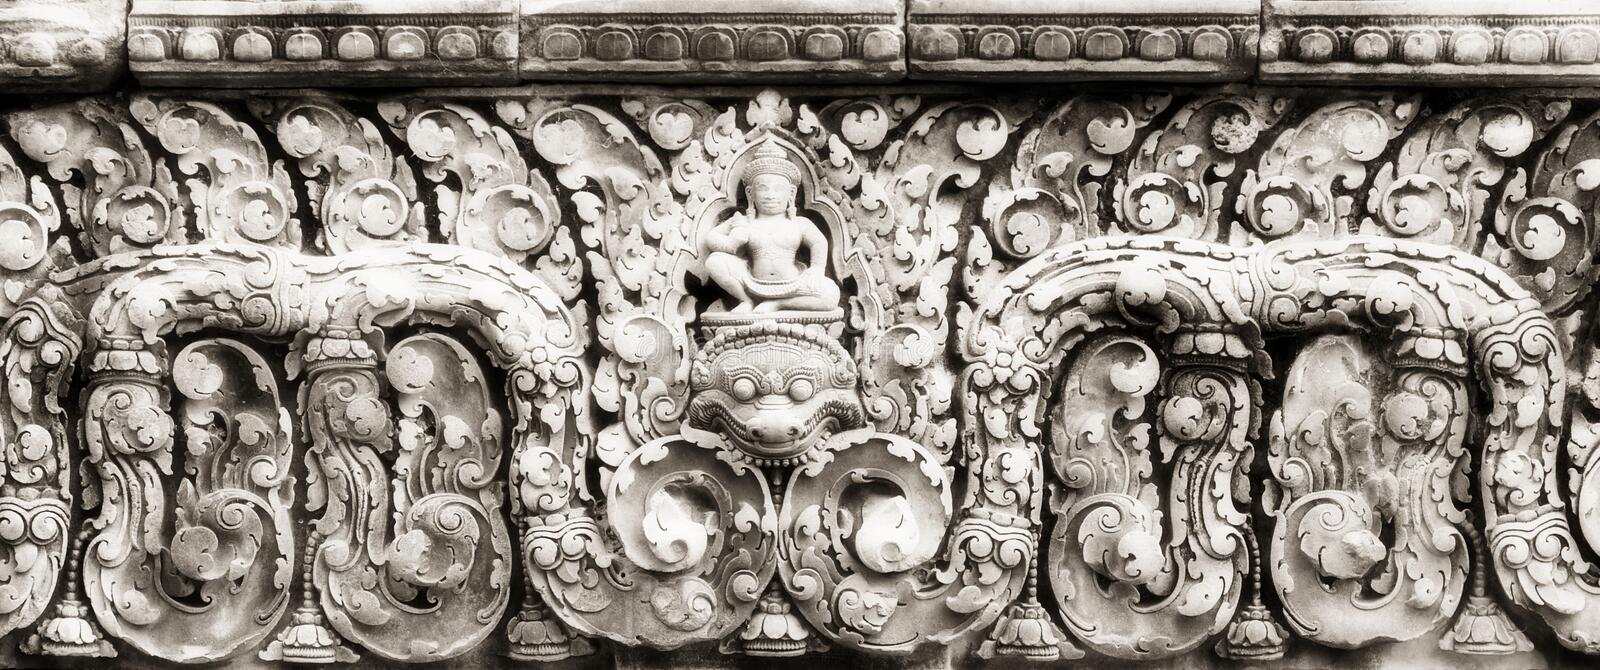 Relief at Banteay Srei royalty free stock images